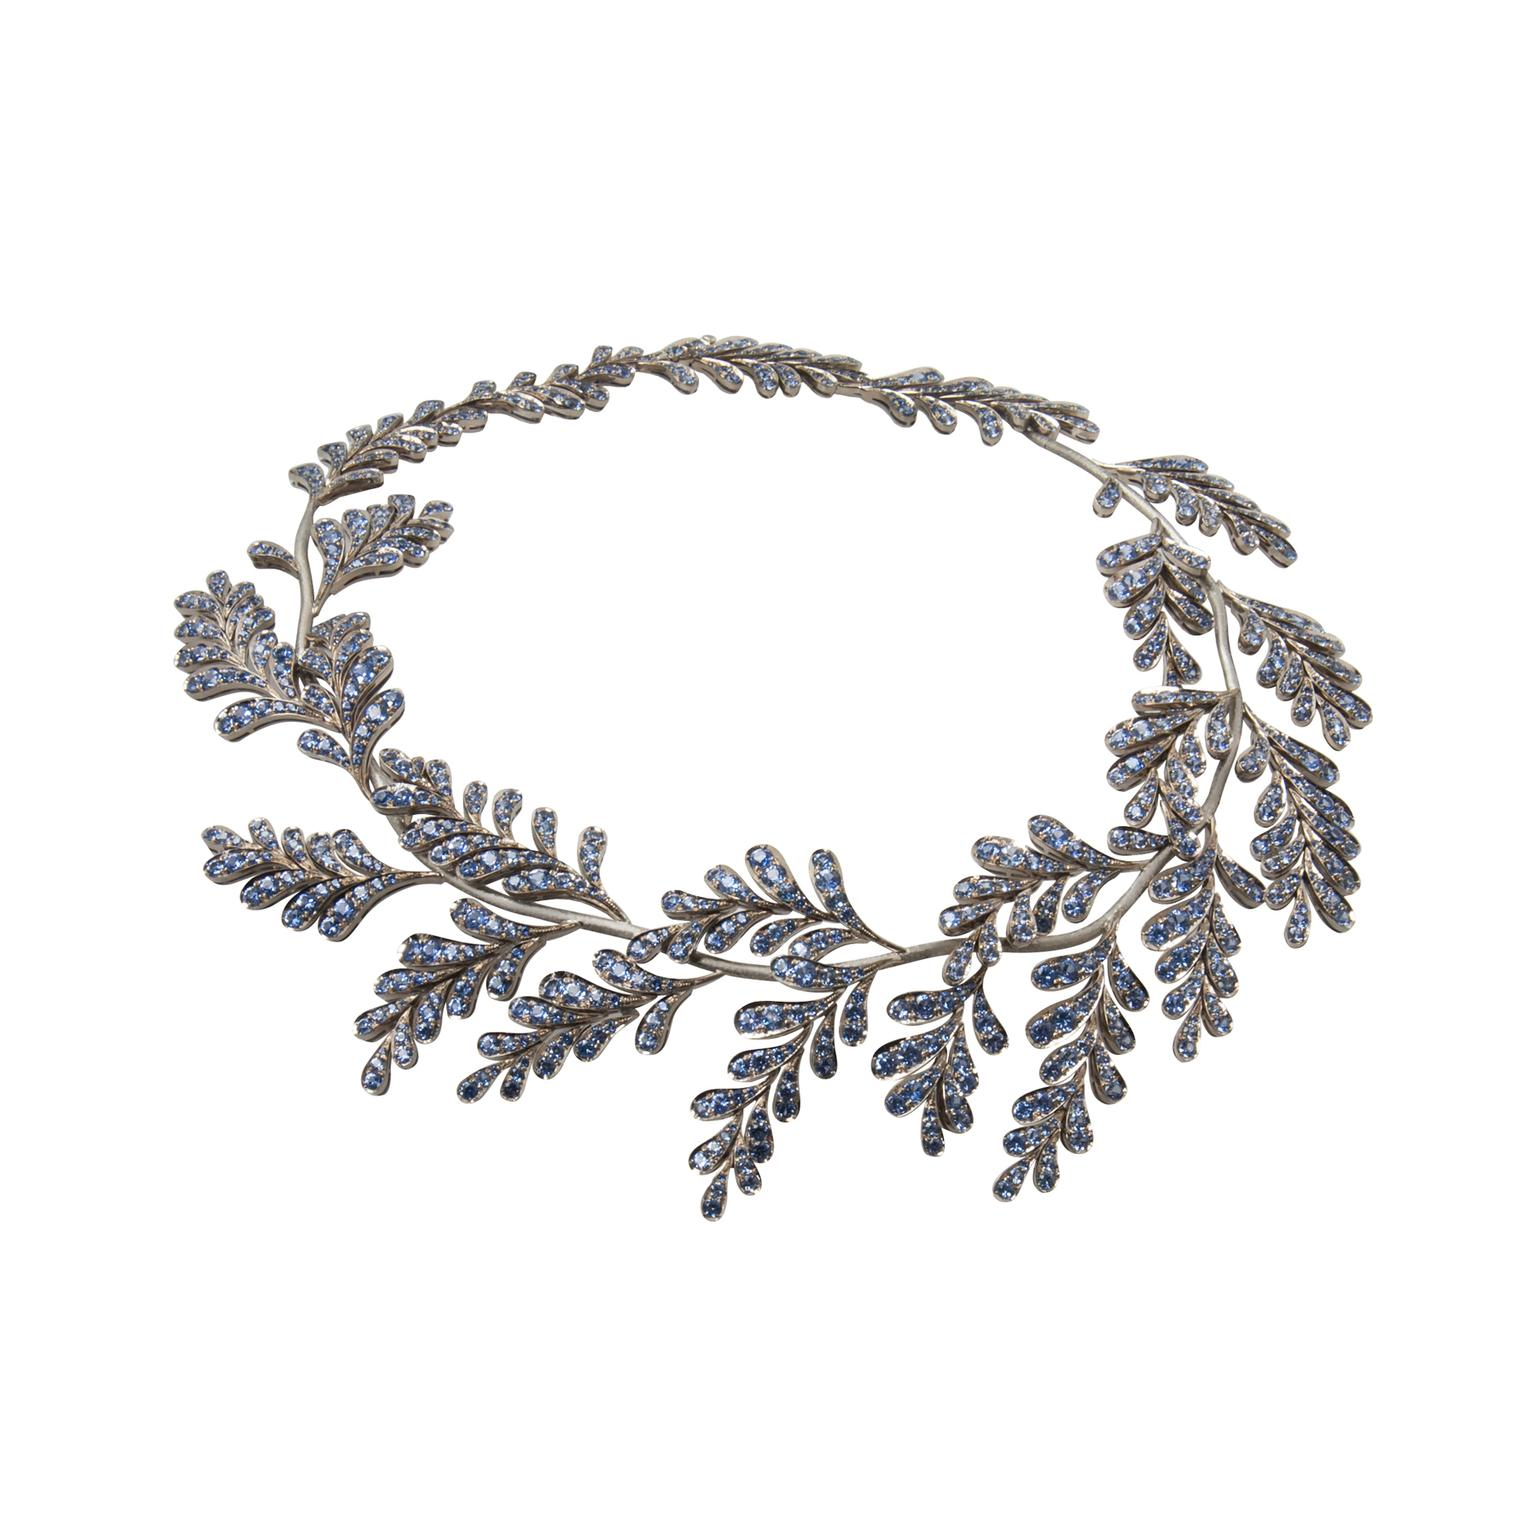 Ming Lampson Wisteria necklace